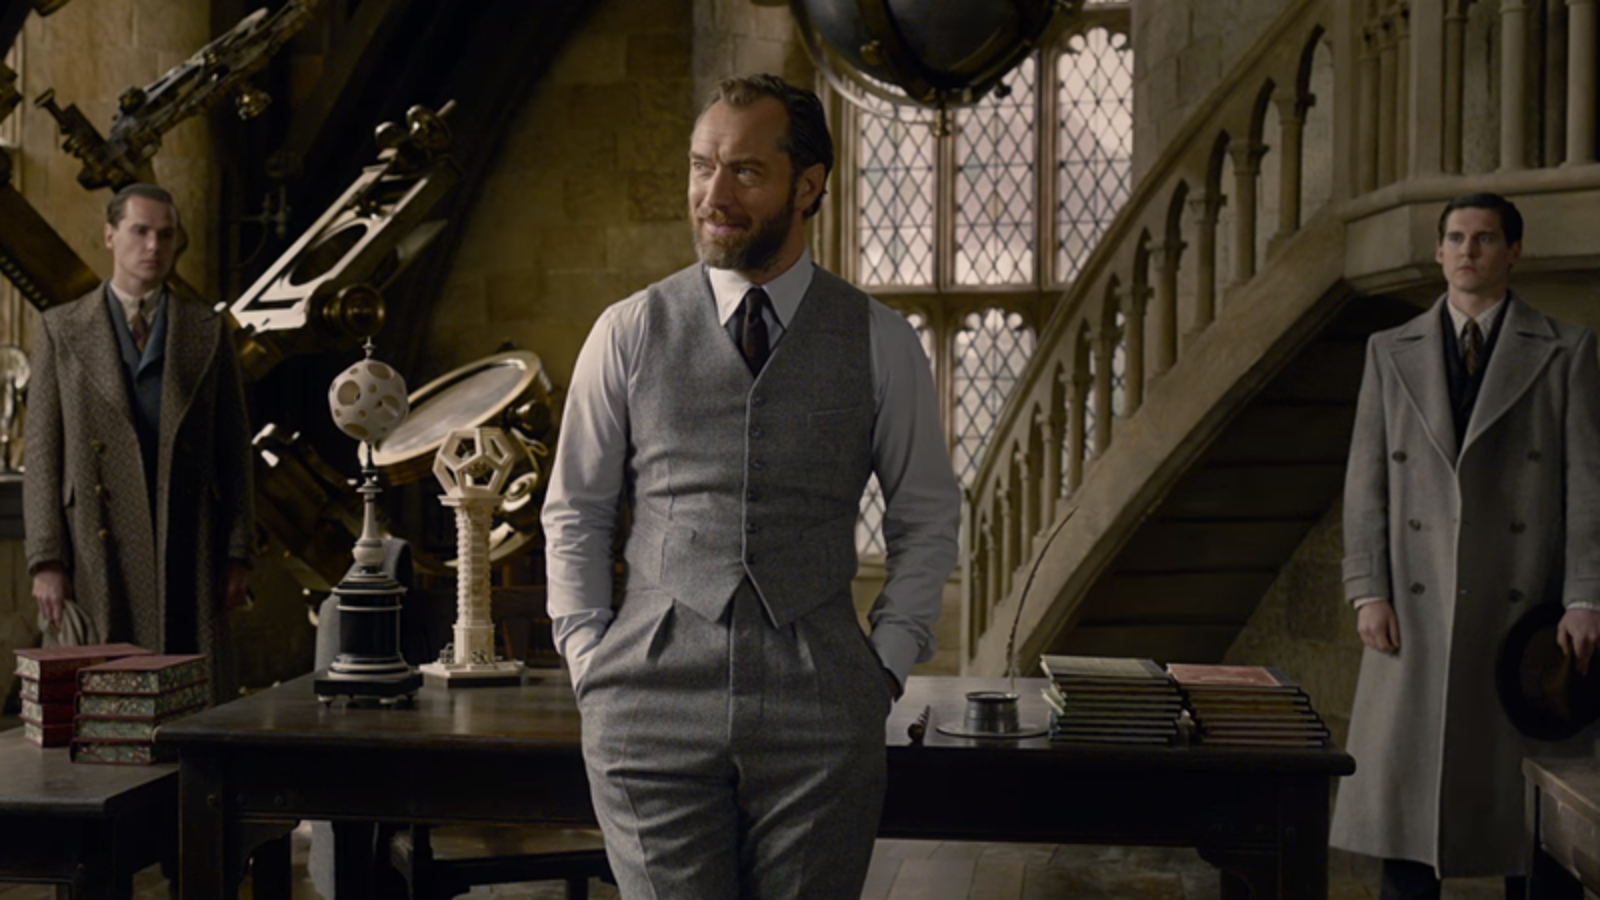 Dumbledore and Grindelwald Won't Share a Single Scene Together in Fantastic Beasts 2